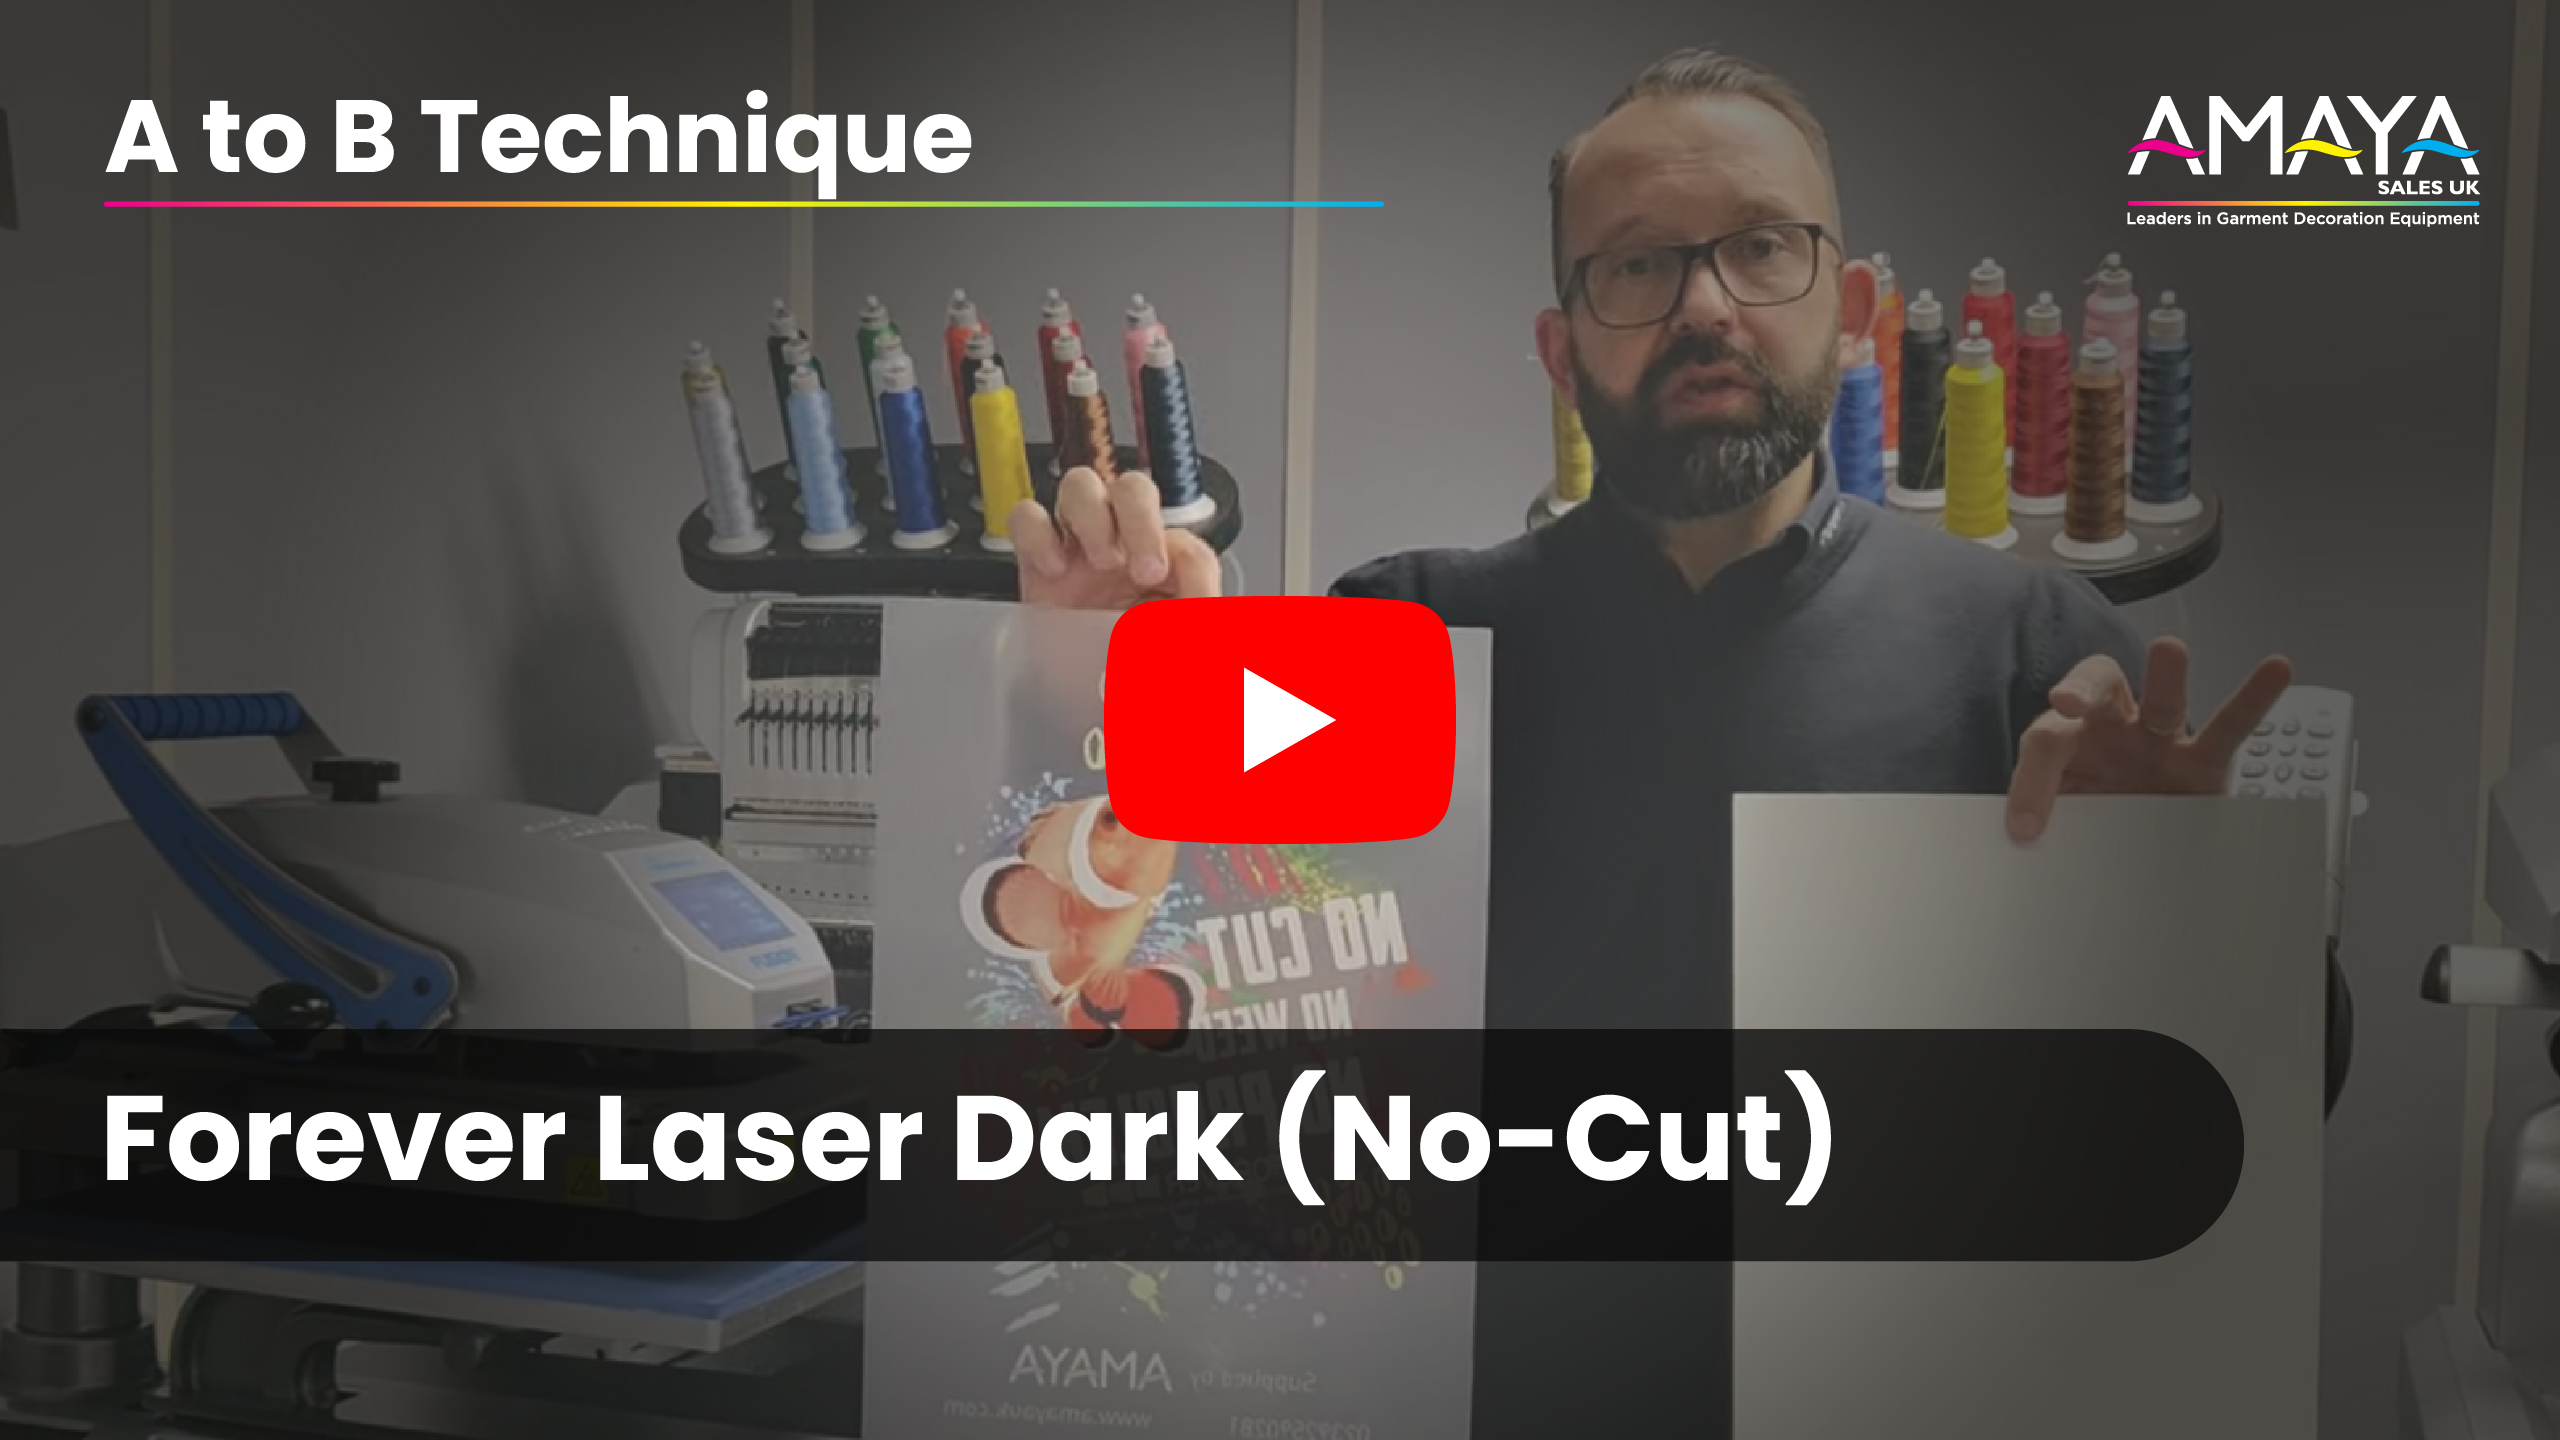 Forever Laser Dark No-Cut - A to B technique - Video Thumbnail